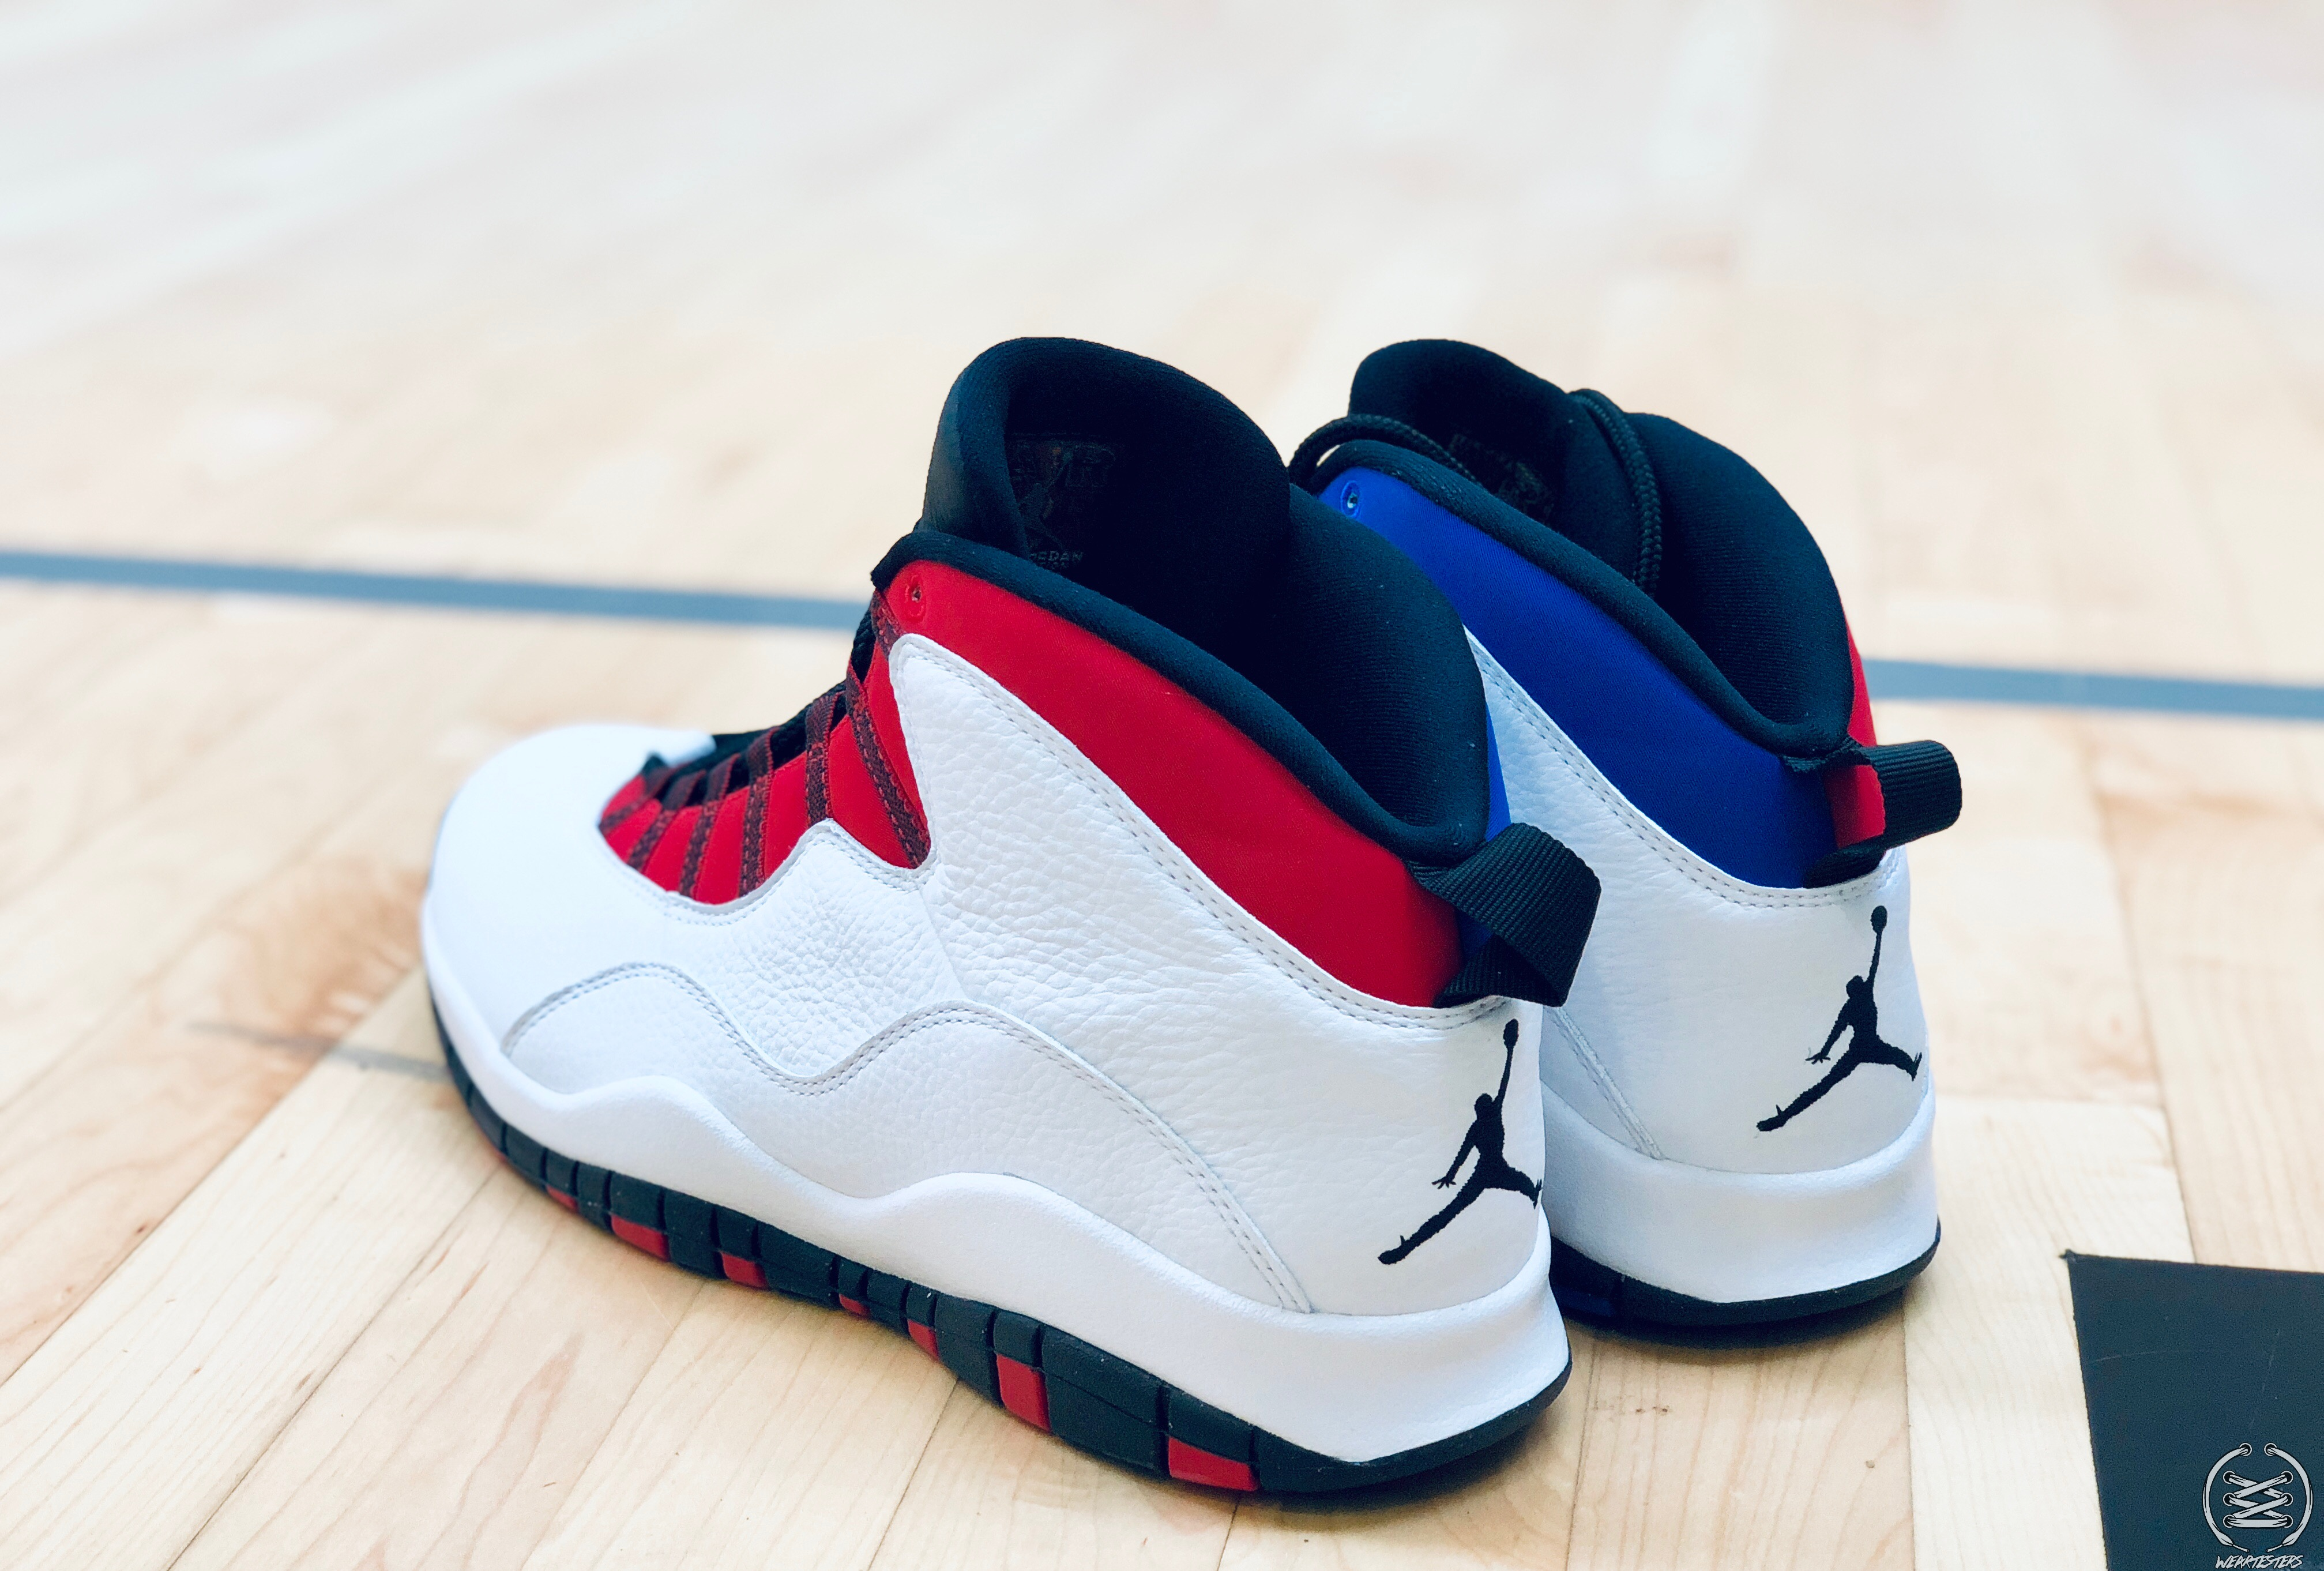 Air Jordan 10 class of 2006 russell westbrook